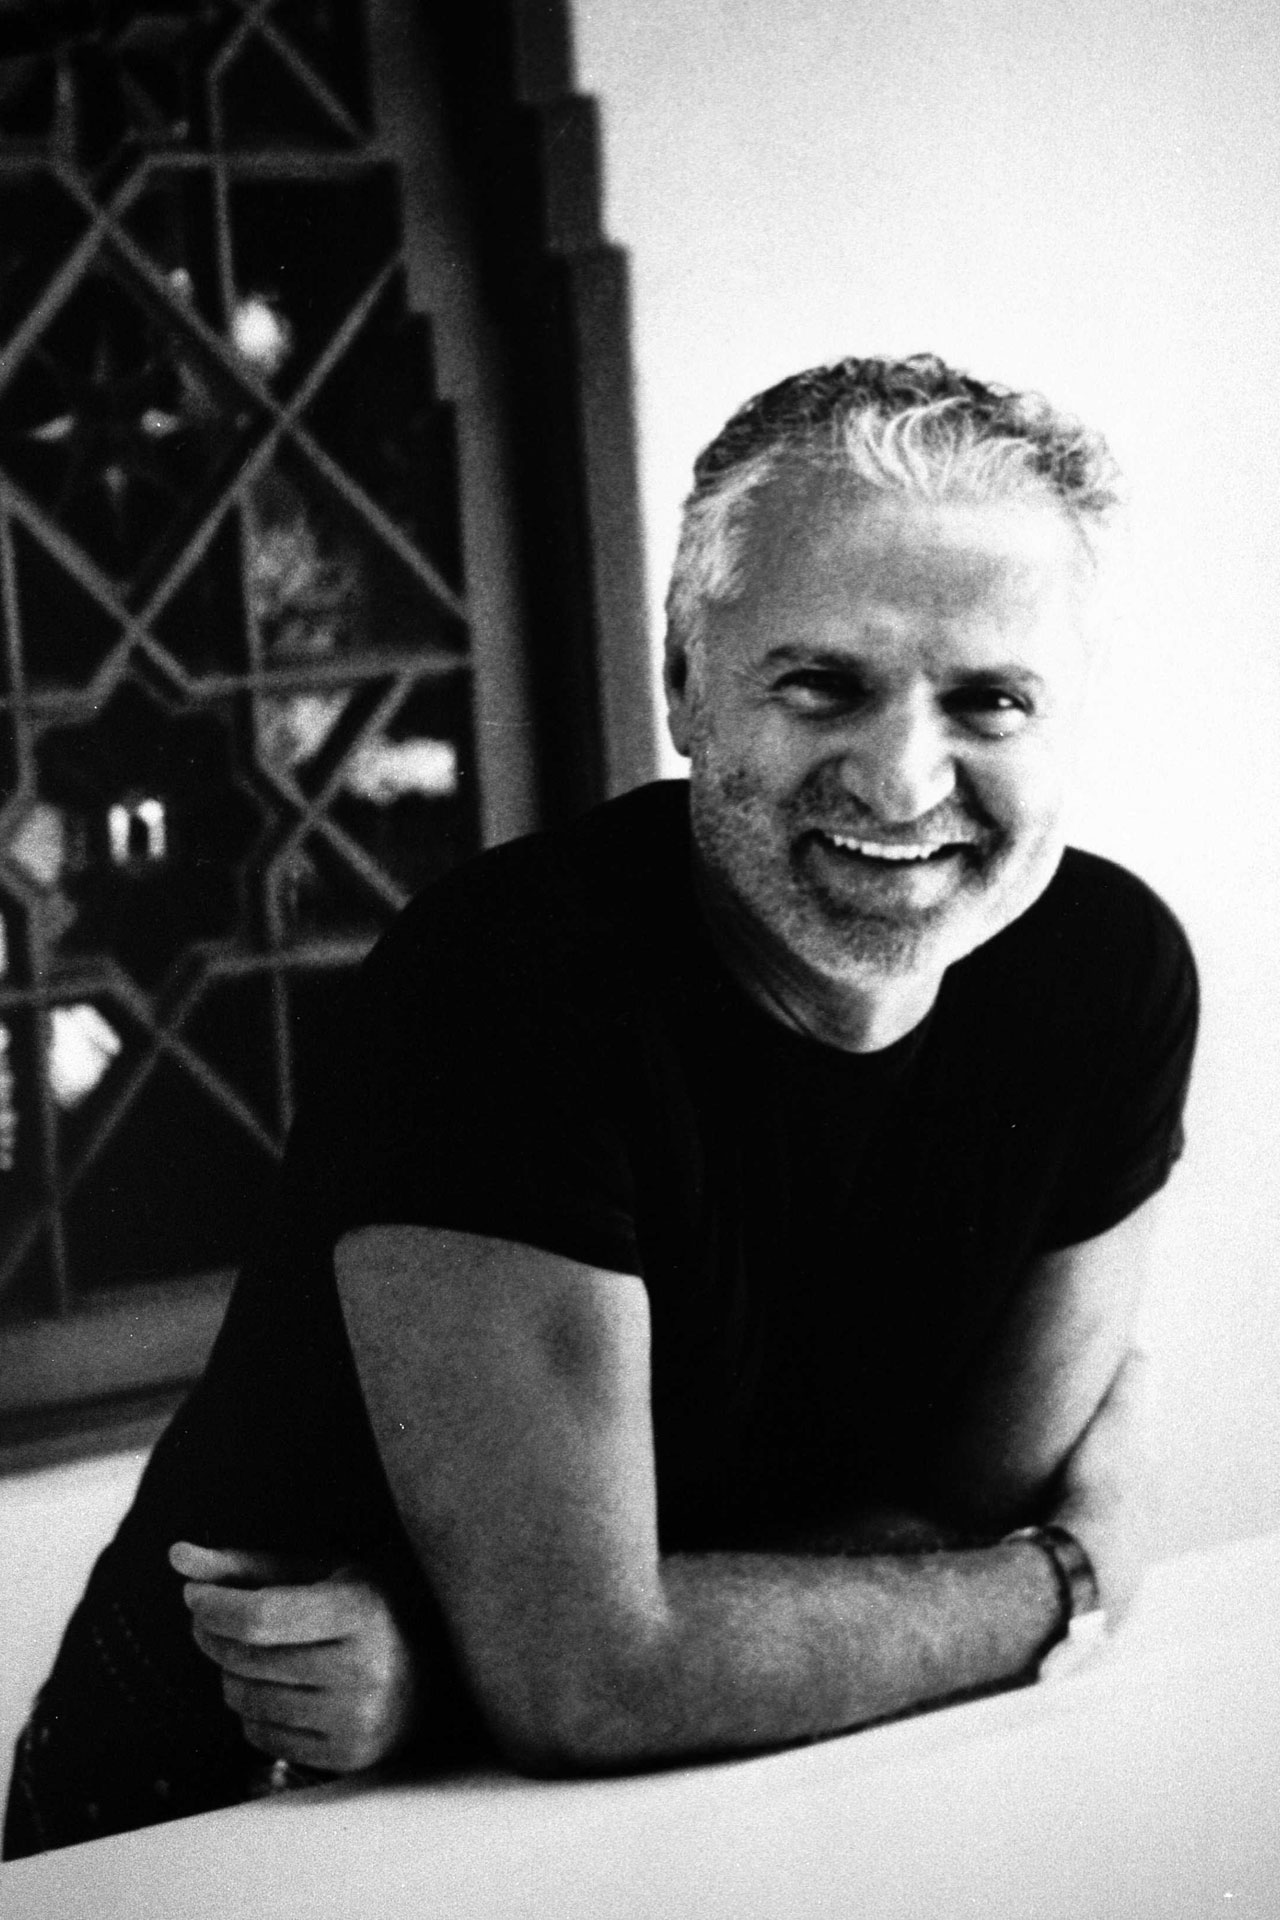 15 Things You Didn't Know About Gianni Versace |Gianni